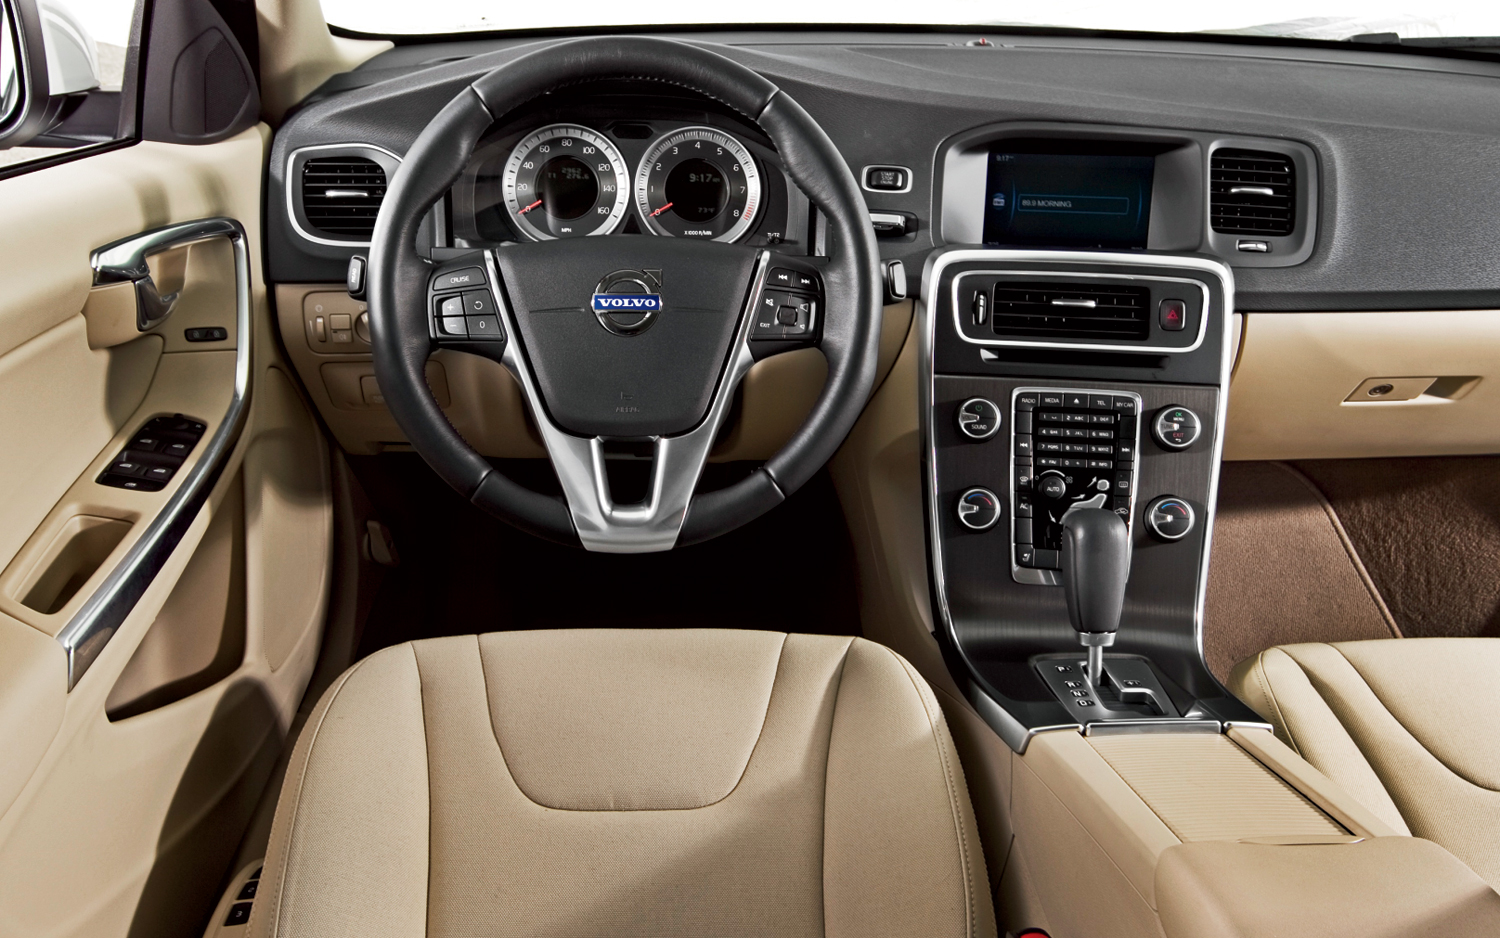 volvo s 60 2012 pictures #14